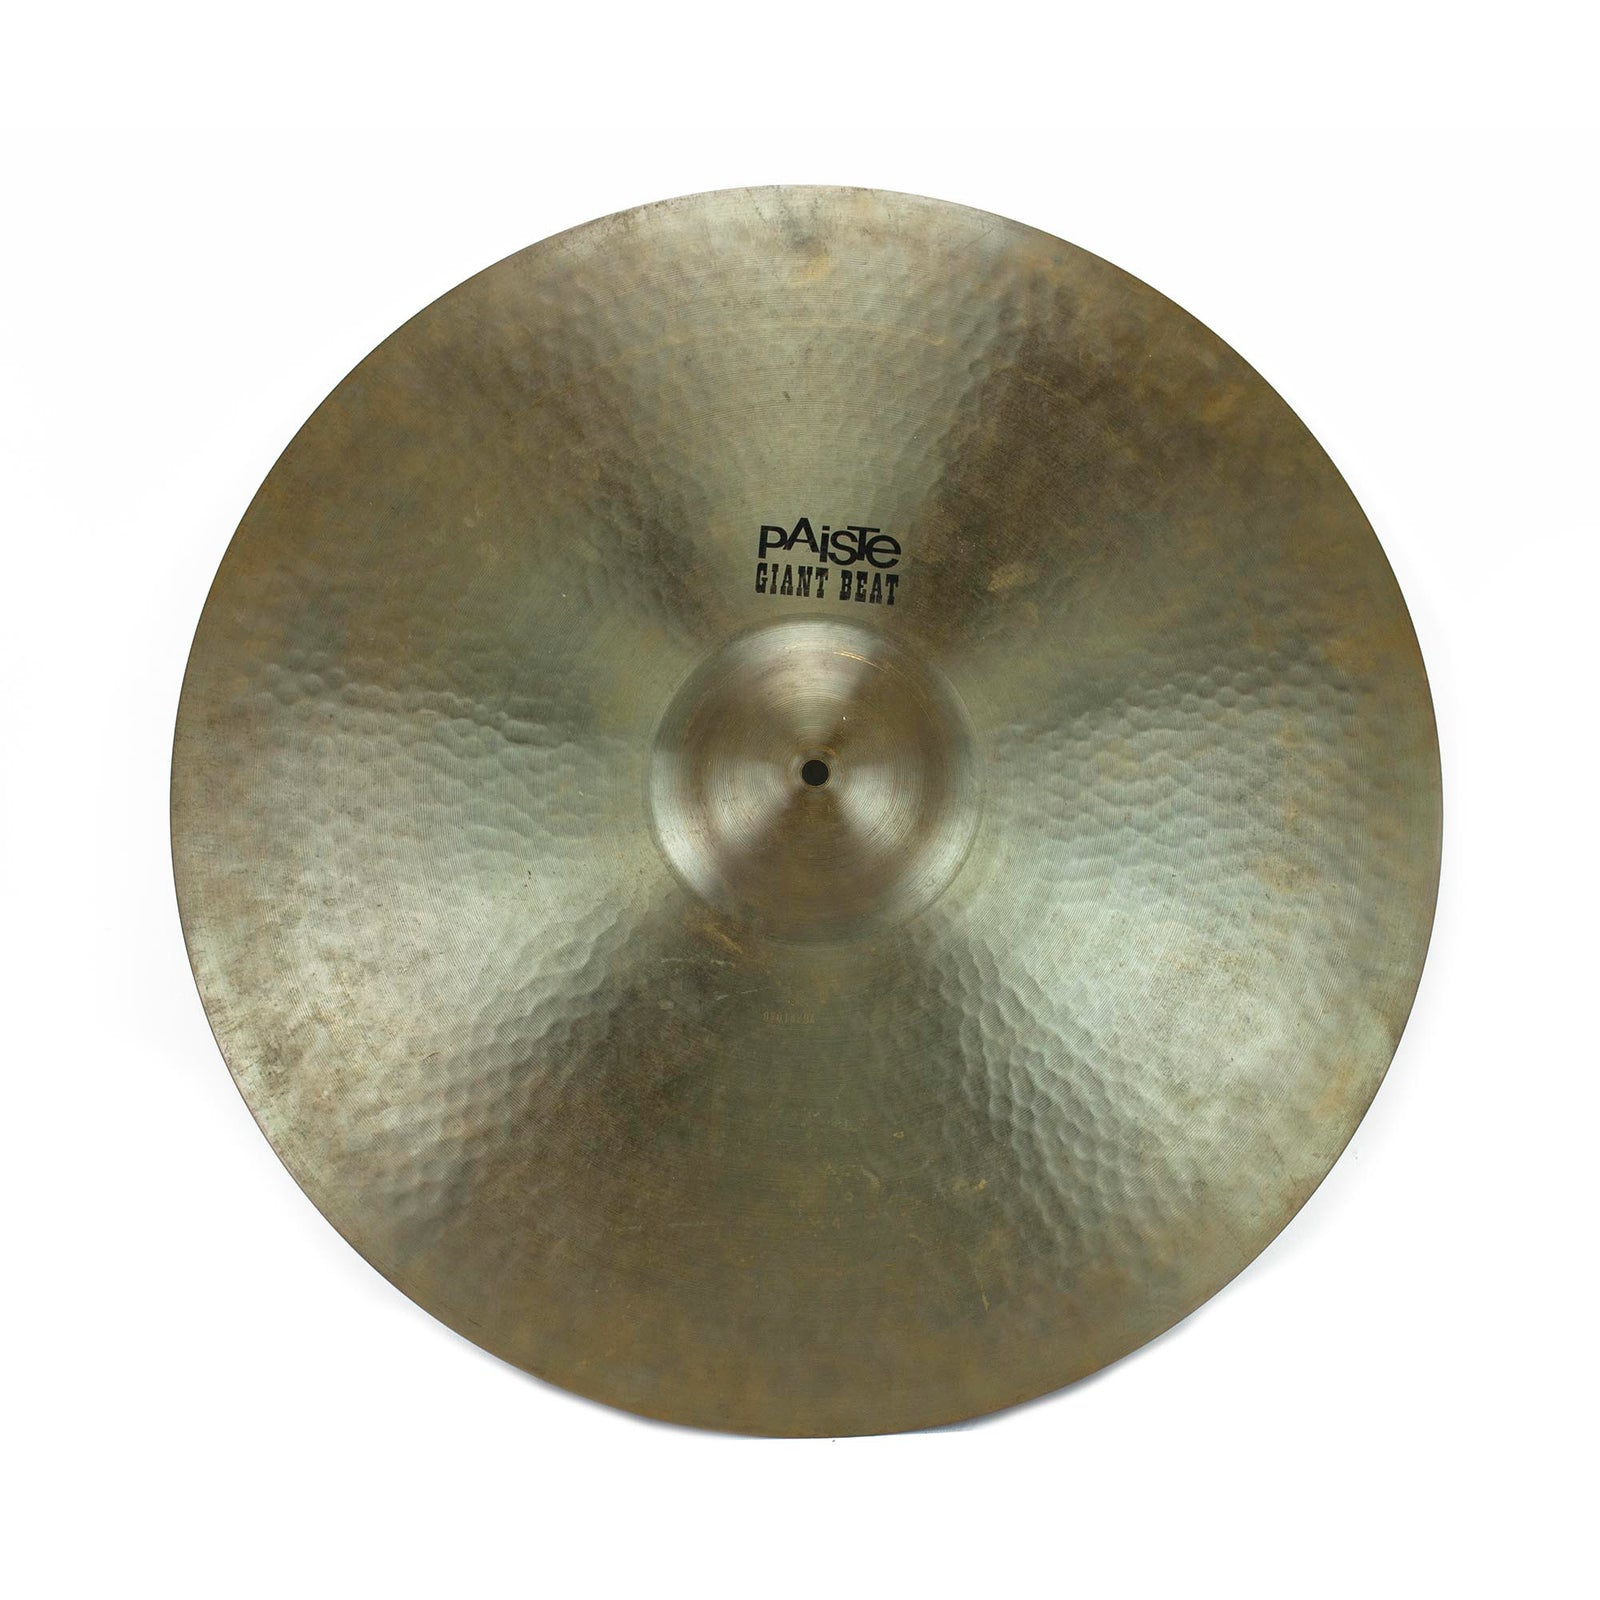 "Paiste 24"" Giant Beat - Used"